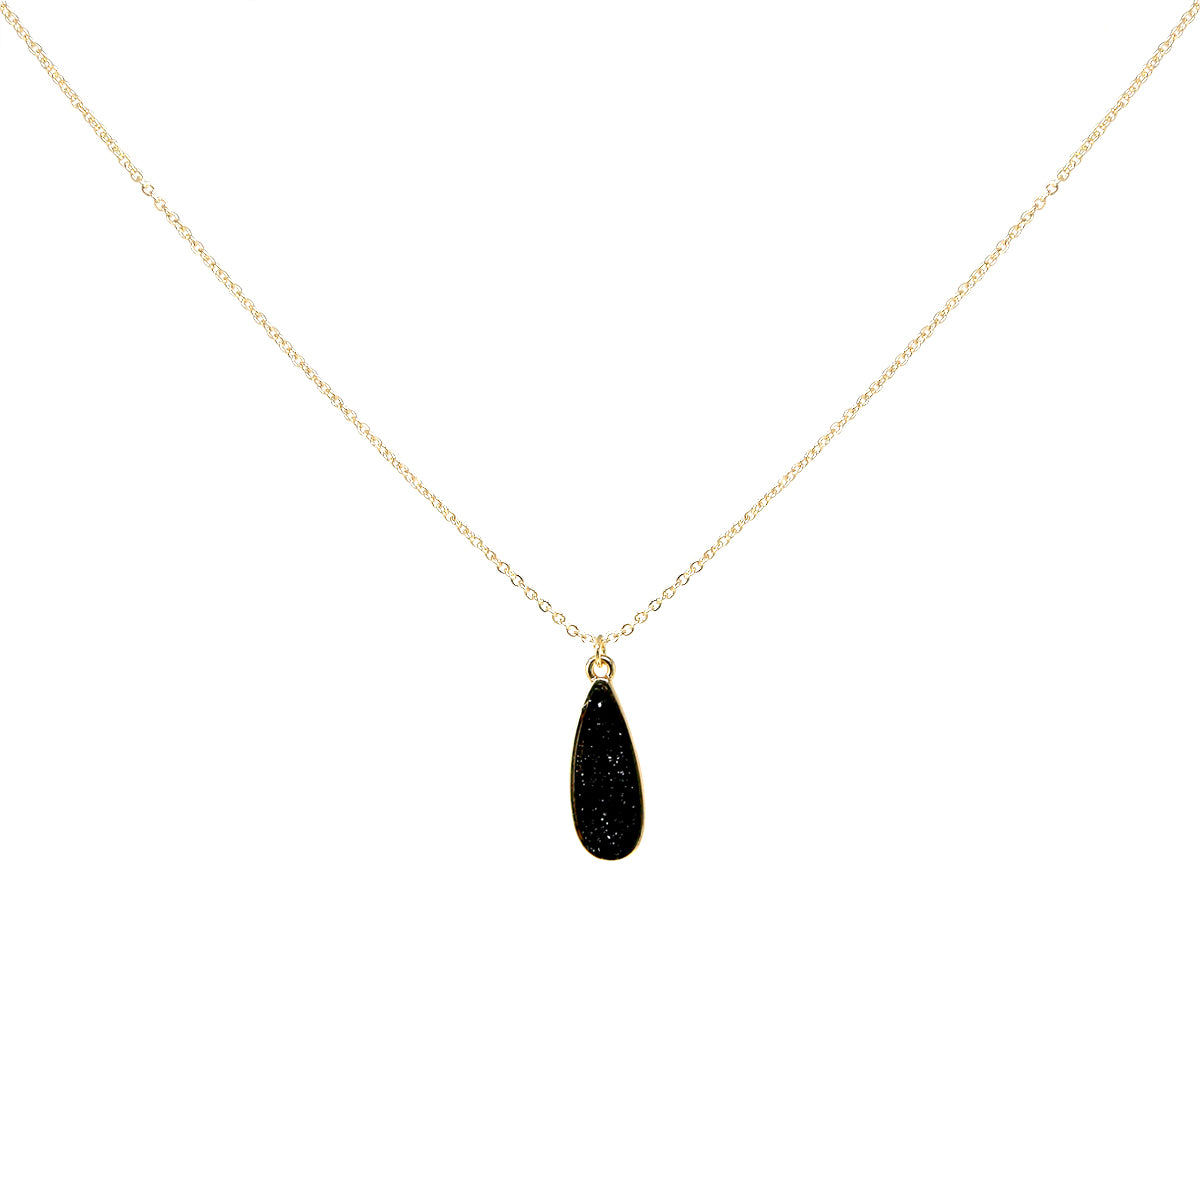 Teardrop Shape Druzy Pendant Short Necklace